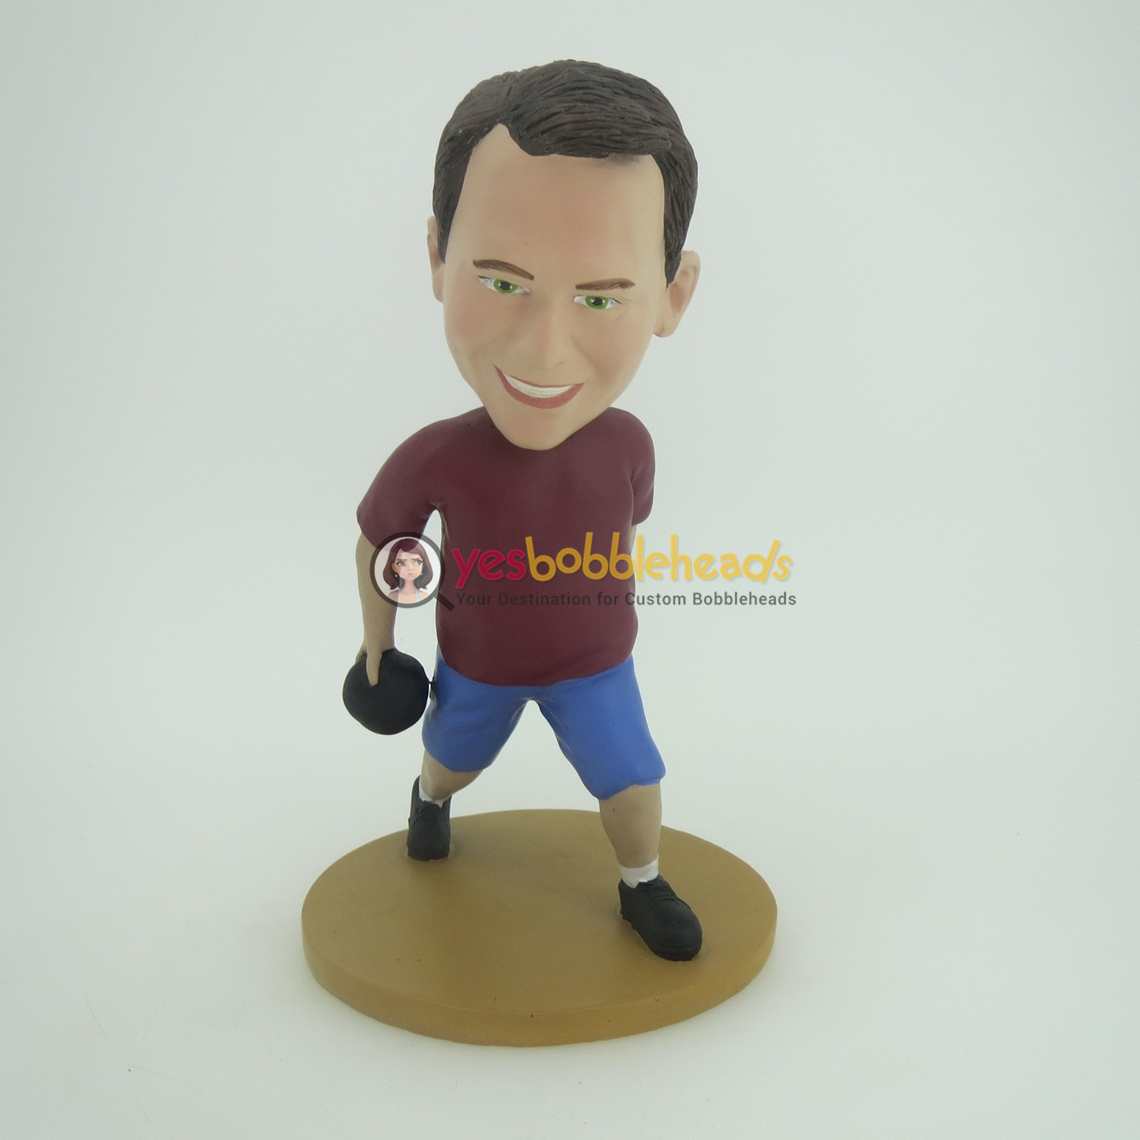 Picture of Custom Bobblehead Doll: Man Playing Bowling